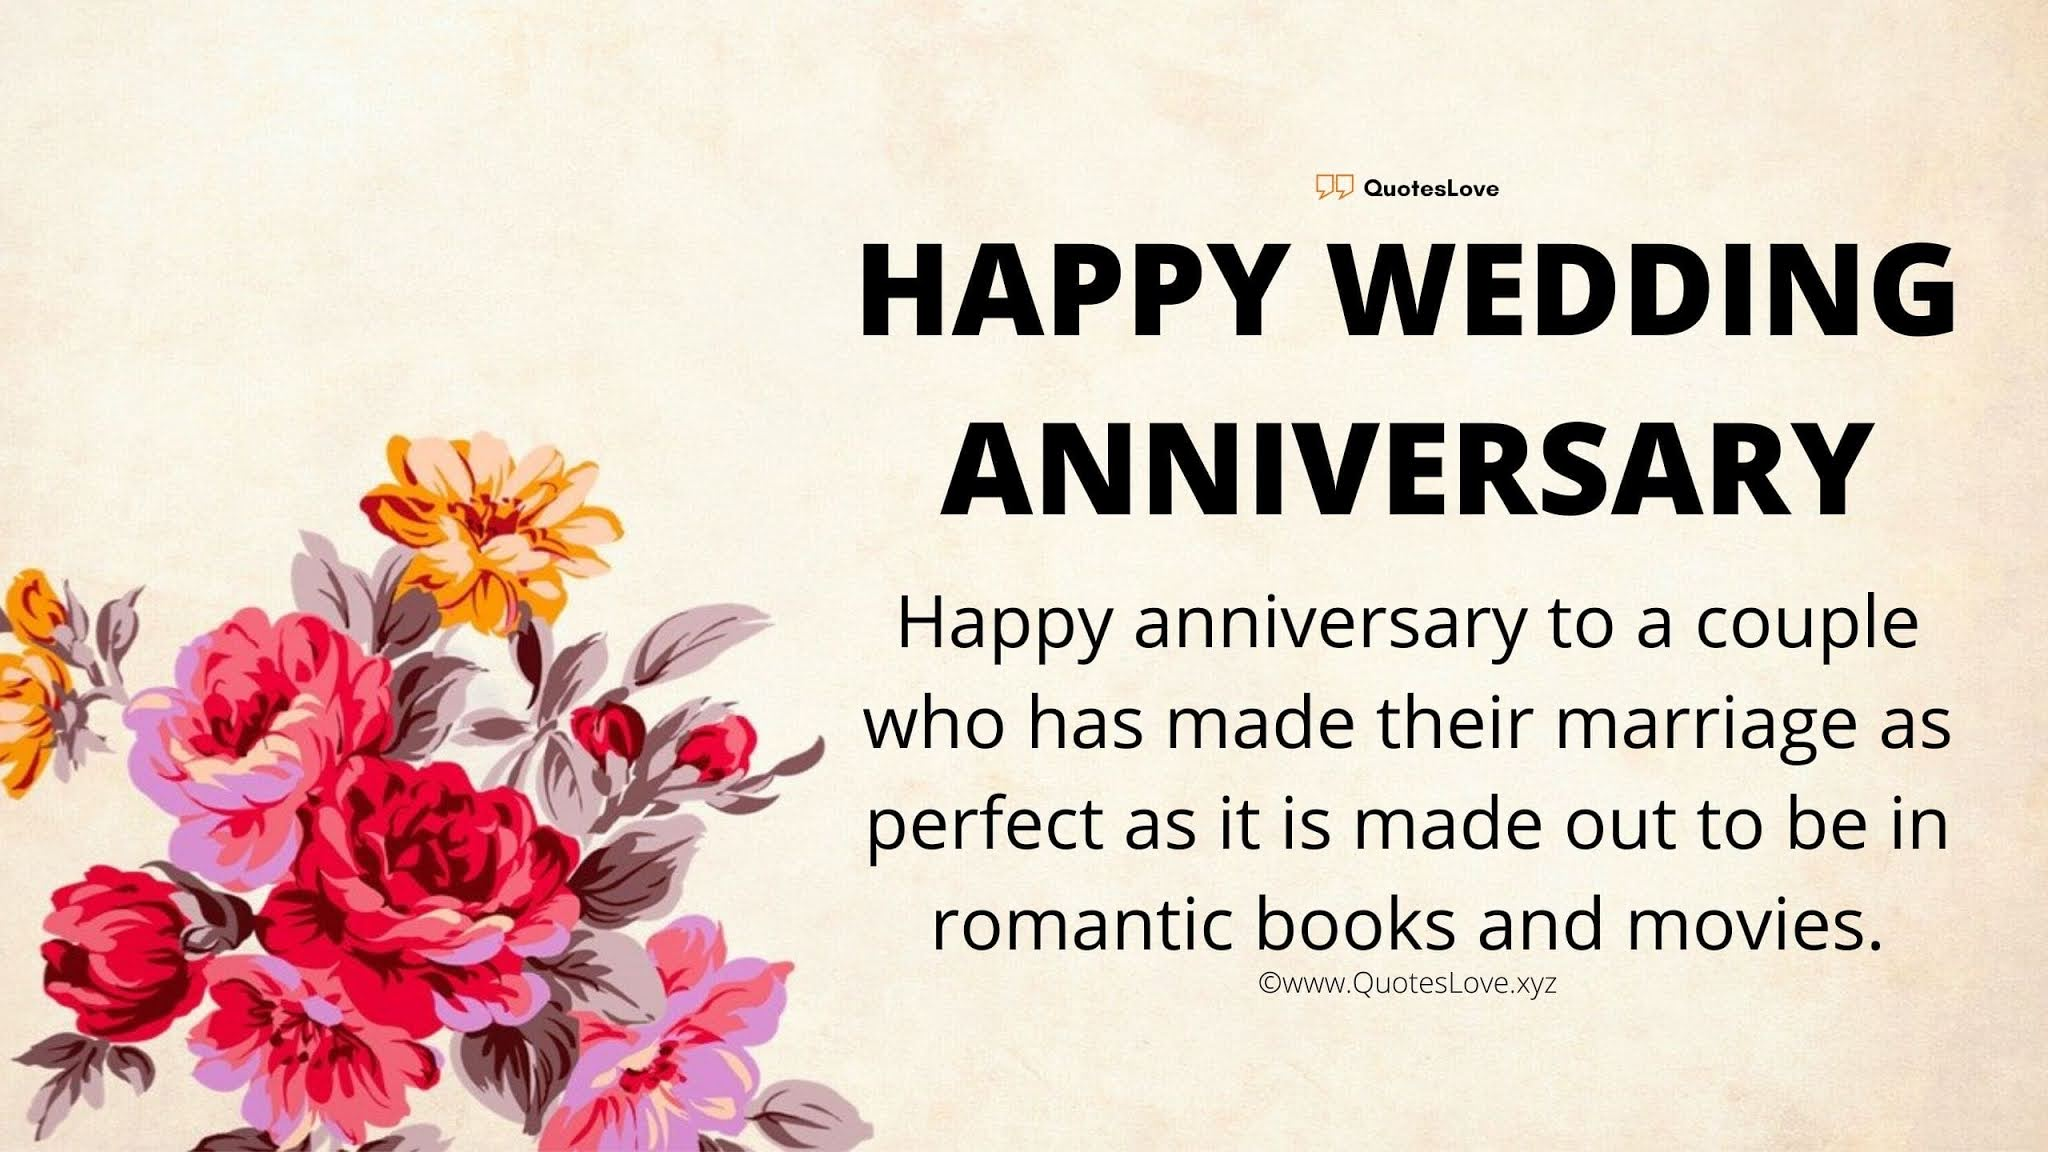 Wedding Anniversary Images, Pictures, Poster, Photos, Wallpaper